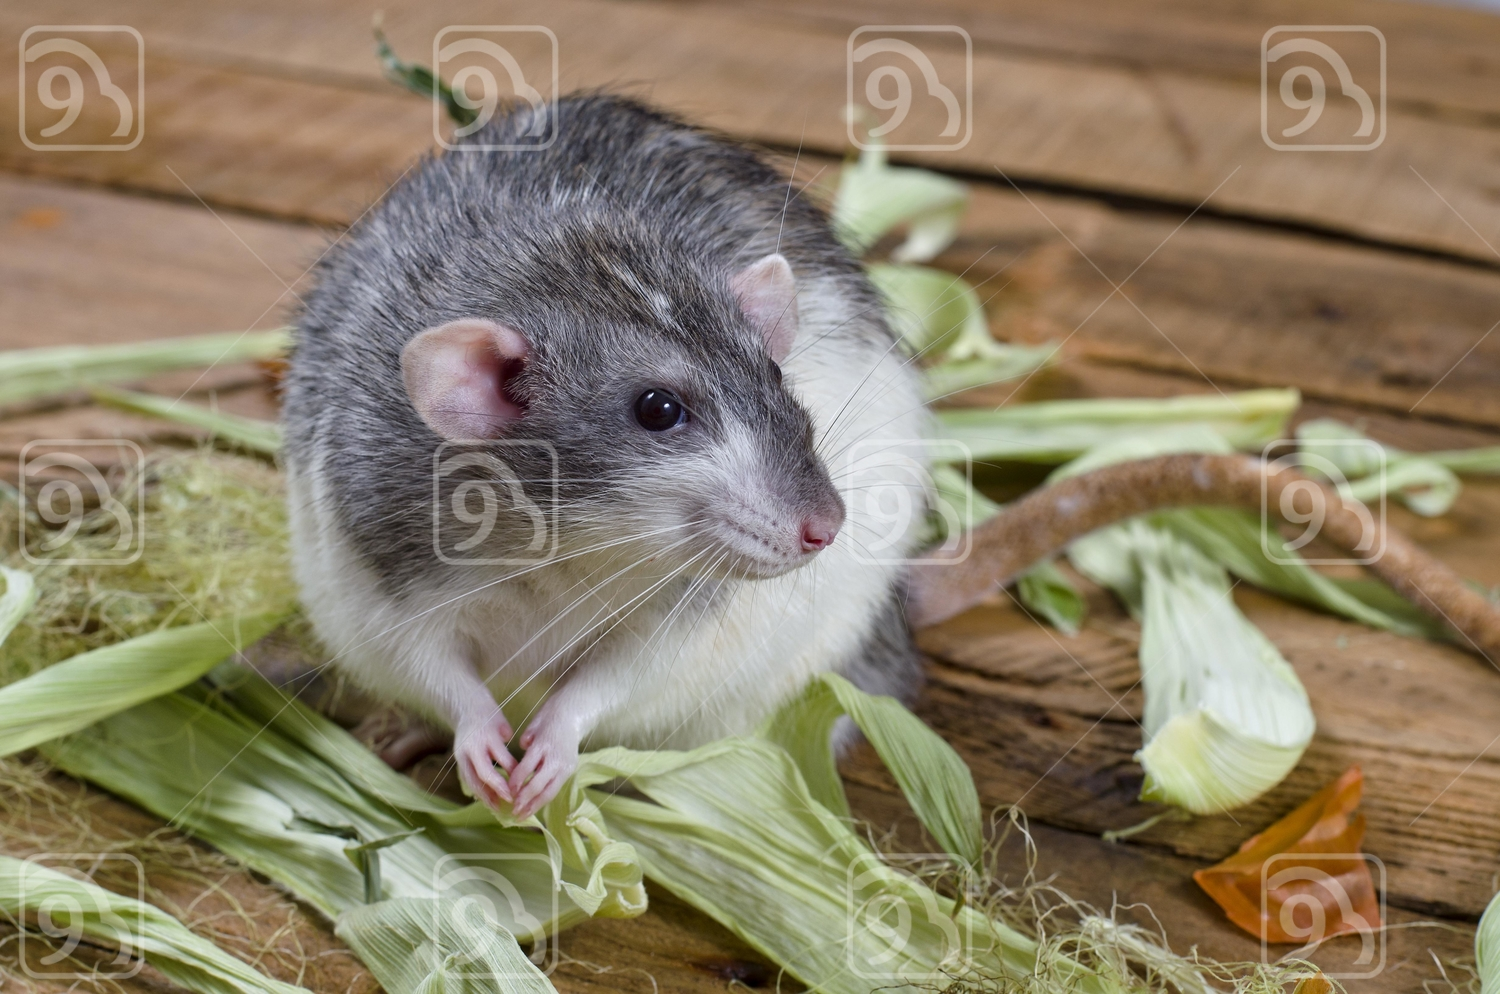 Grey Rat and leaves of corn.